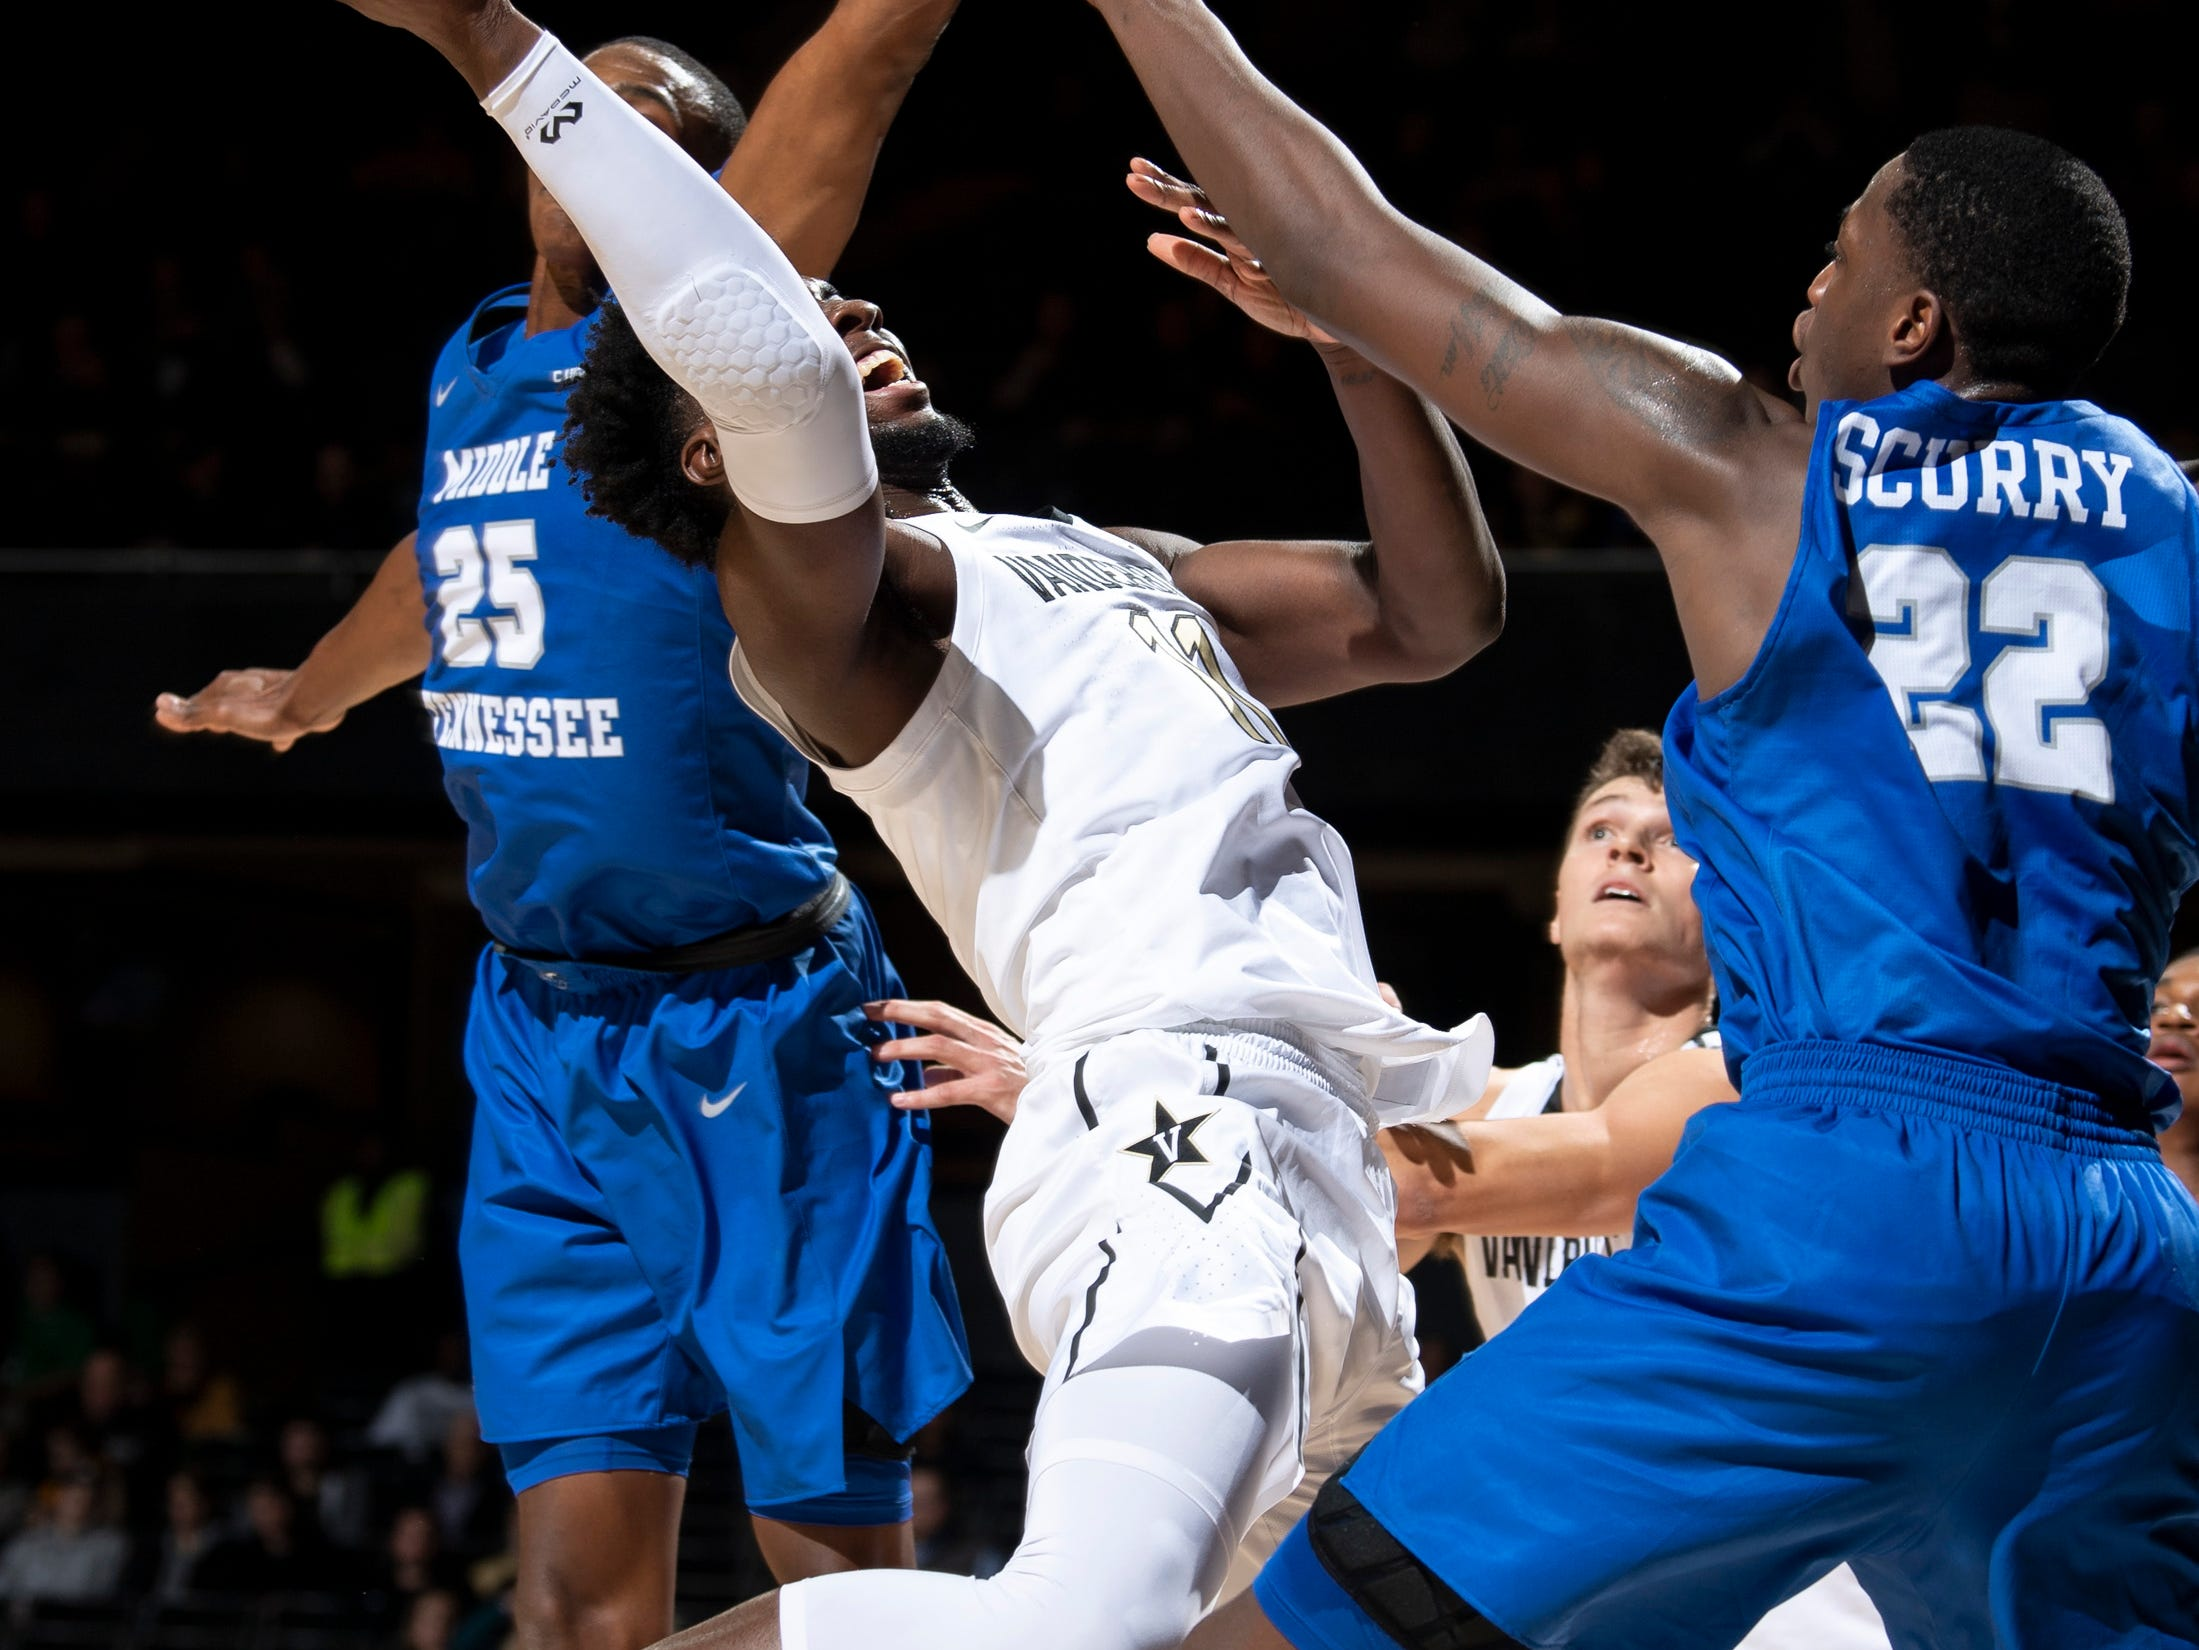 Vanderbilt forward Simisola Shittu (11) shoots into MTSU forward Reggie Scurry (22) and forward Karl Gamble (25) during the first half at Memorial Gym in Nashville, Tenn., Wednesday, Dec. 5, 2018.